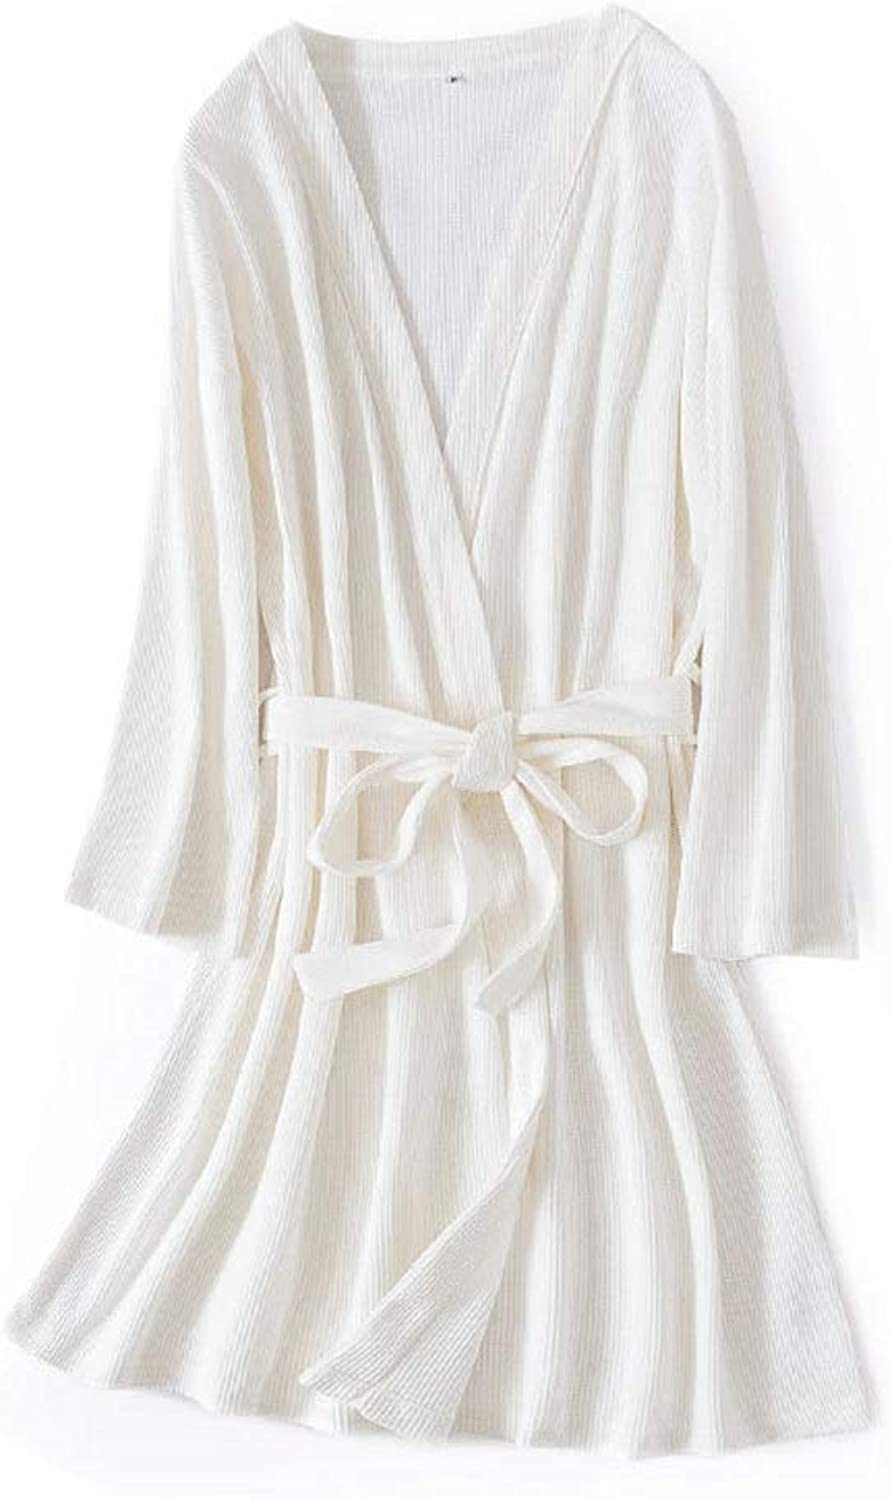 YUNHAO Waffle Honeycomb Cotton Bathrobe Solid color Couple Nightgown Simple Long Section Home Service A (color   Women's White, Size   OneSize)